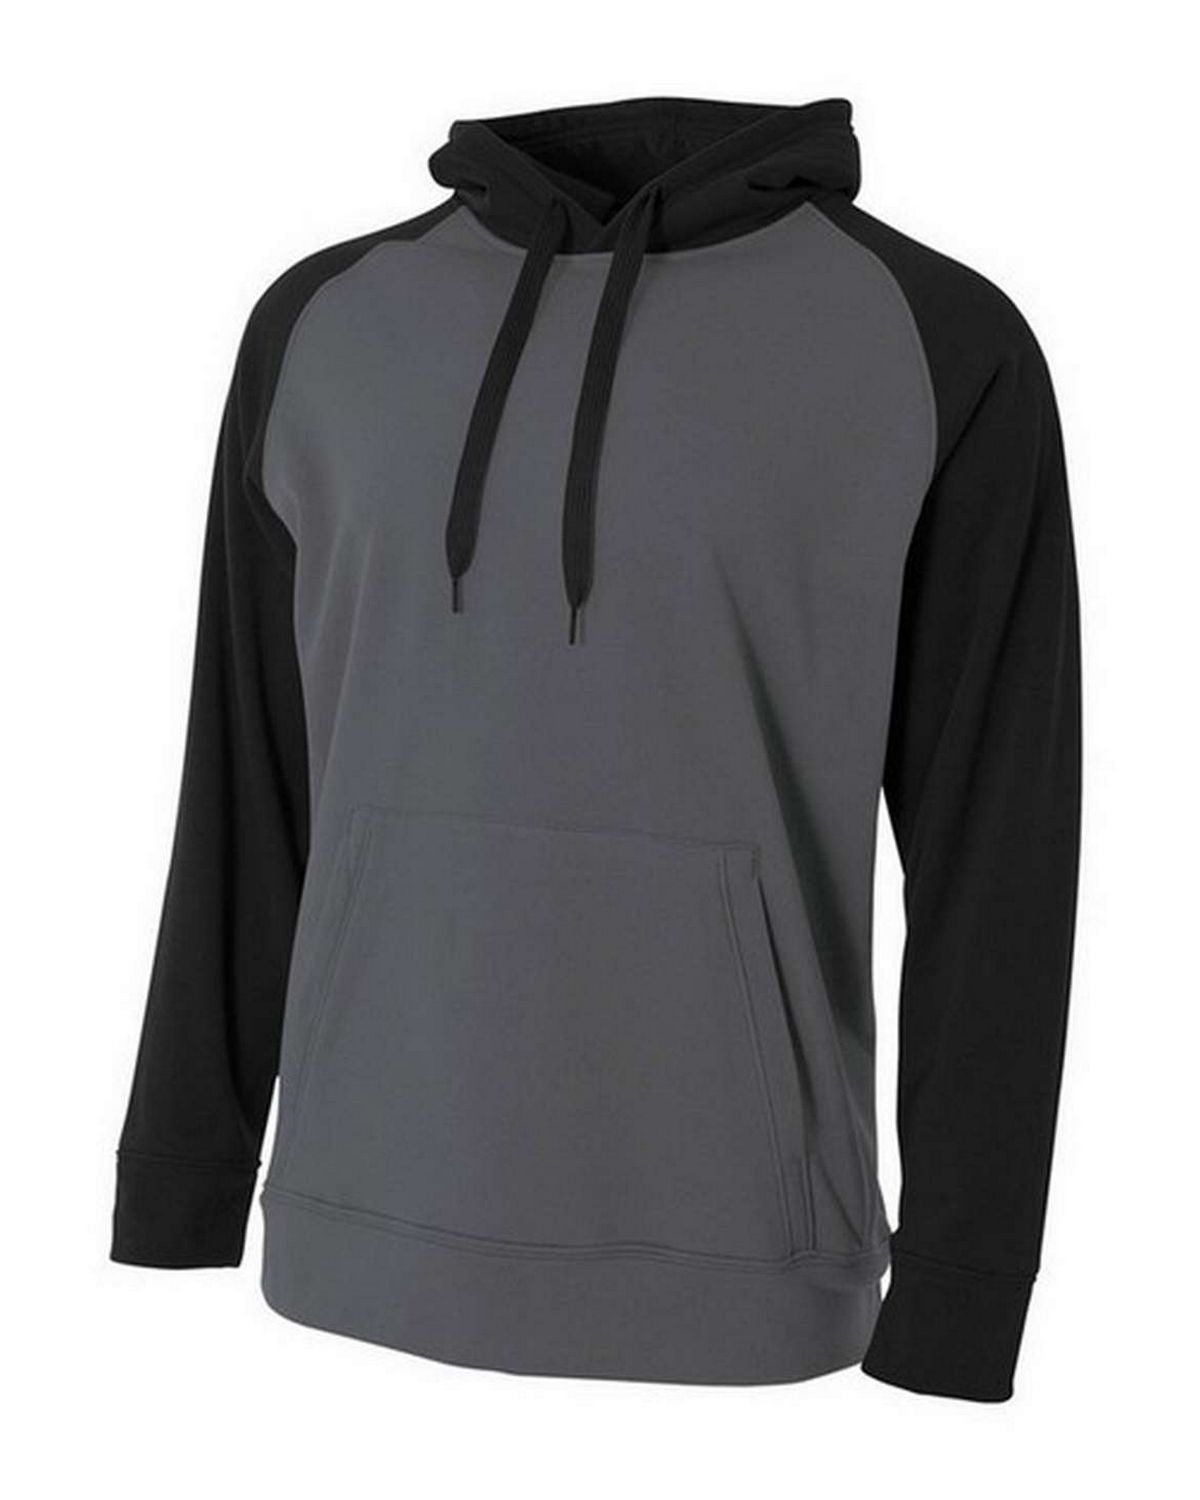 A4 N4234 Adult Color Block Tech Fleece Hoodie